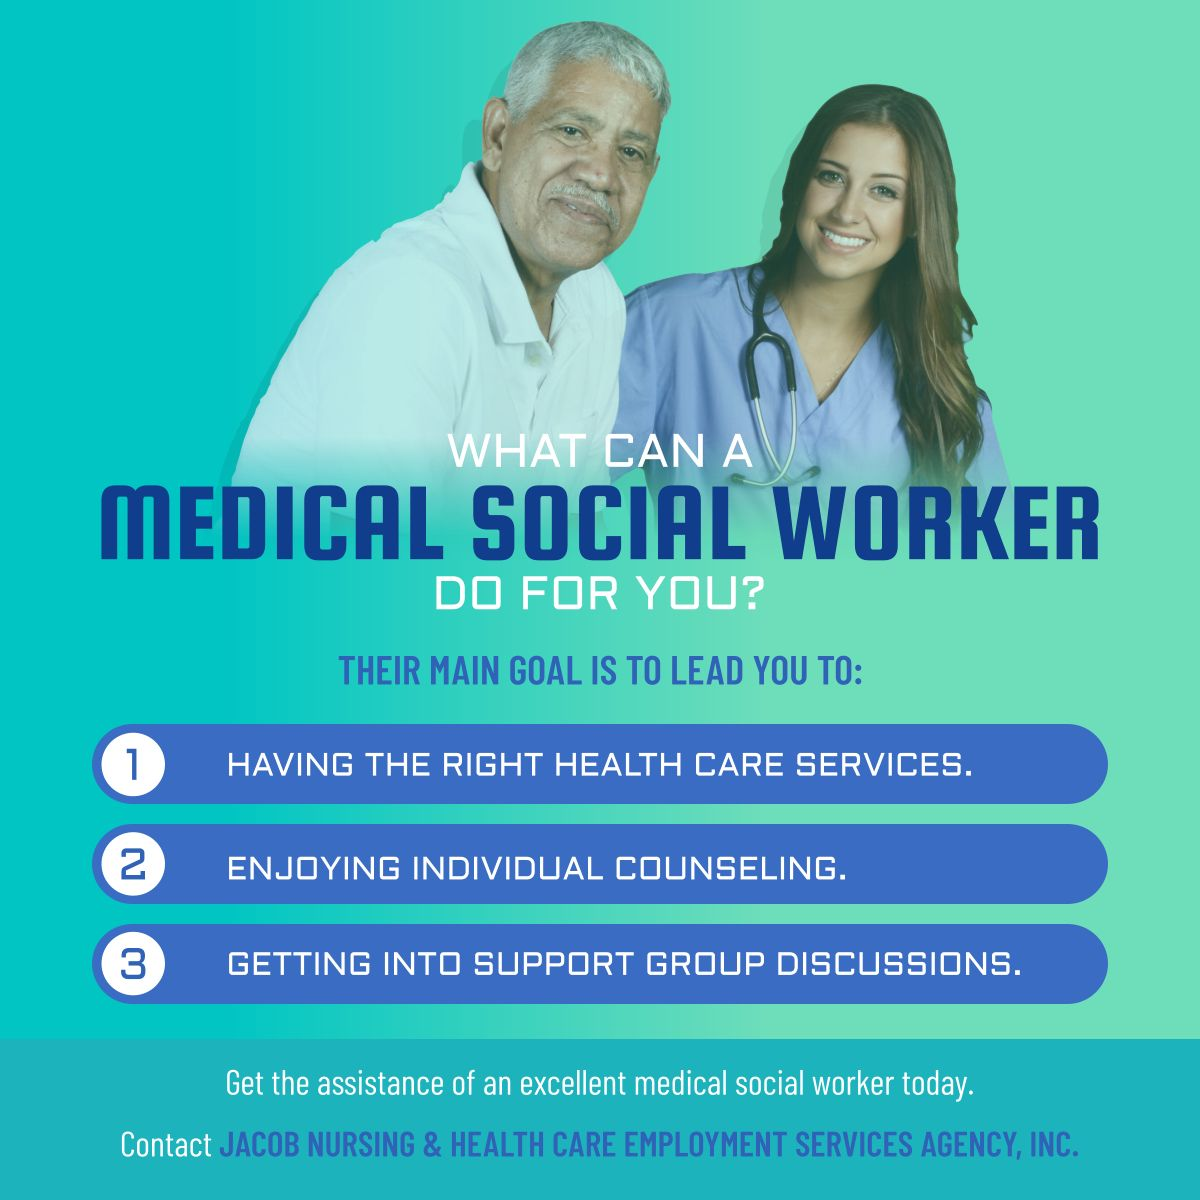 What Can a Medical Social Worker Do for You?